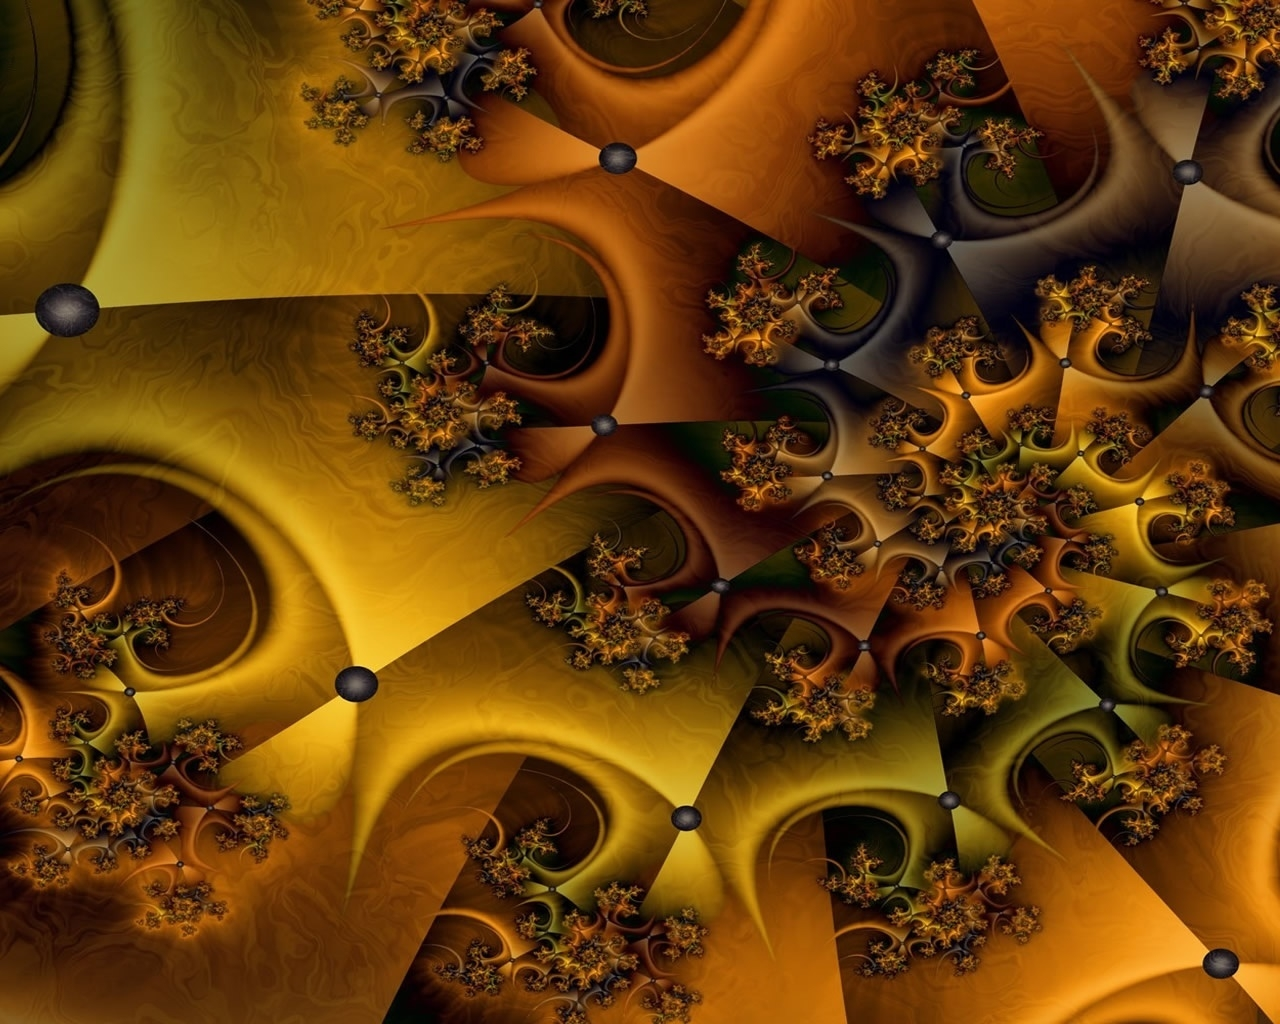 Nice fractal for 1280 x 1024 resolution